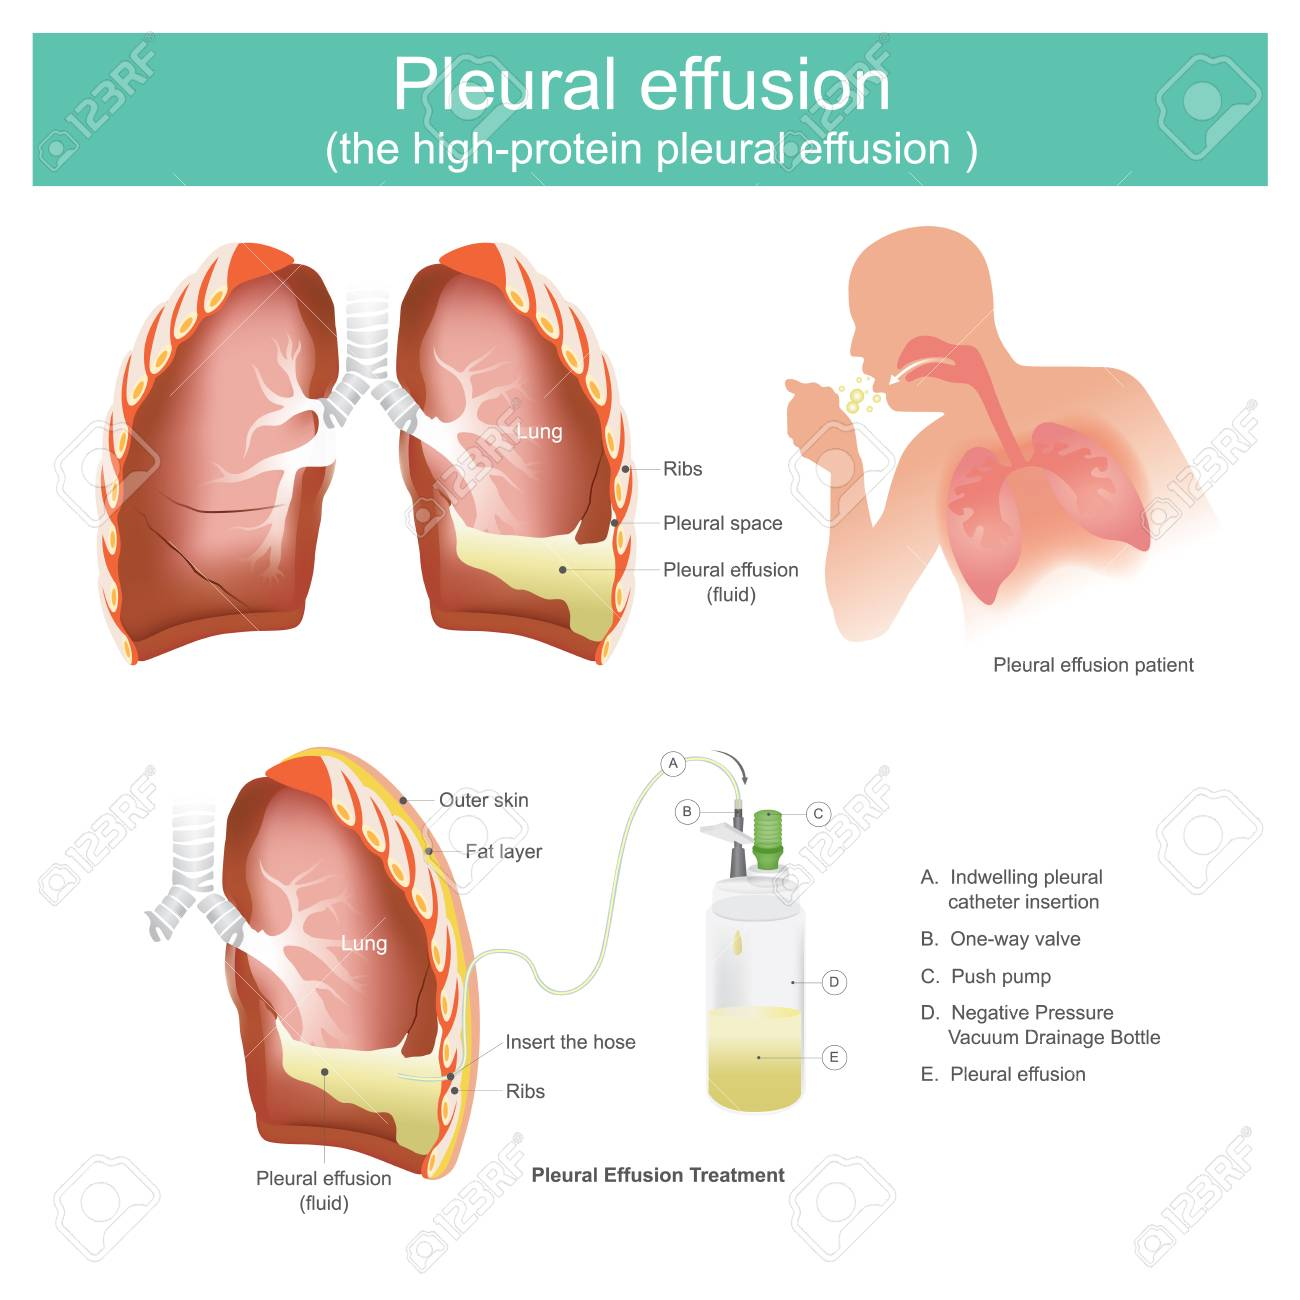 Pleural Effusion Is An Accumulation Of Fluid In The Chest Or